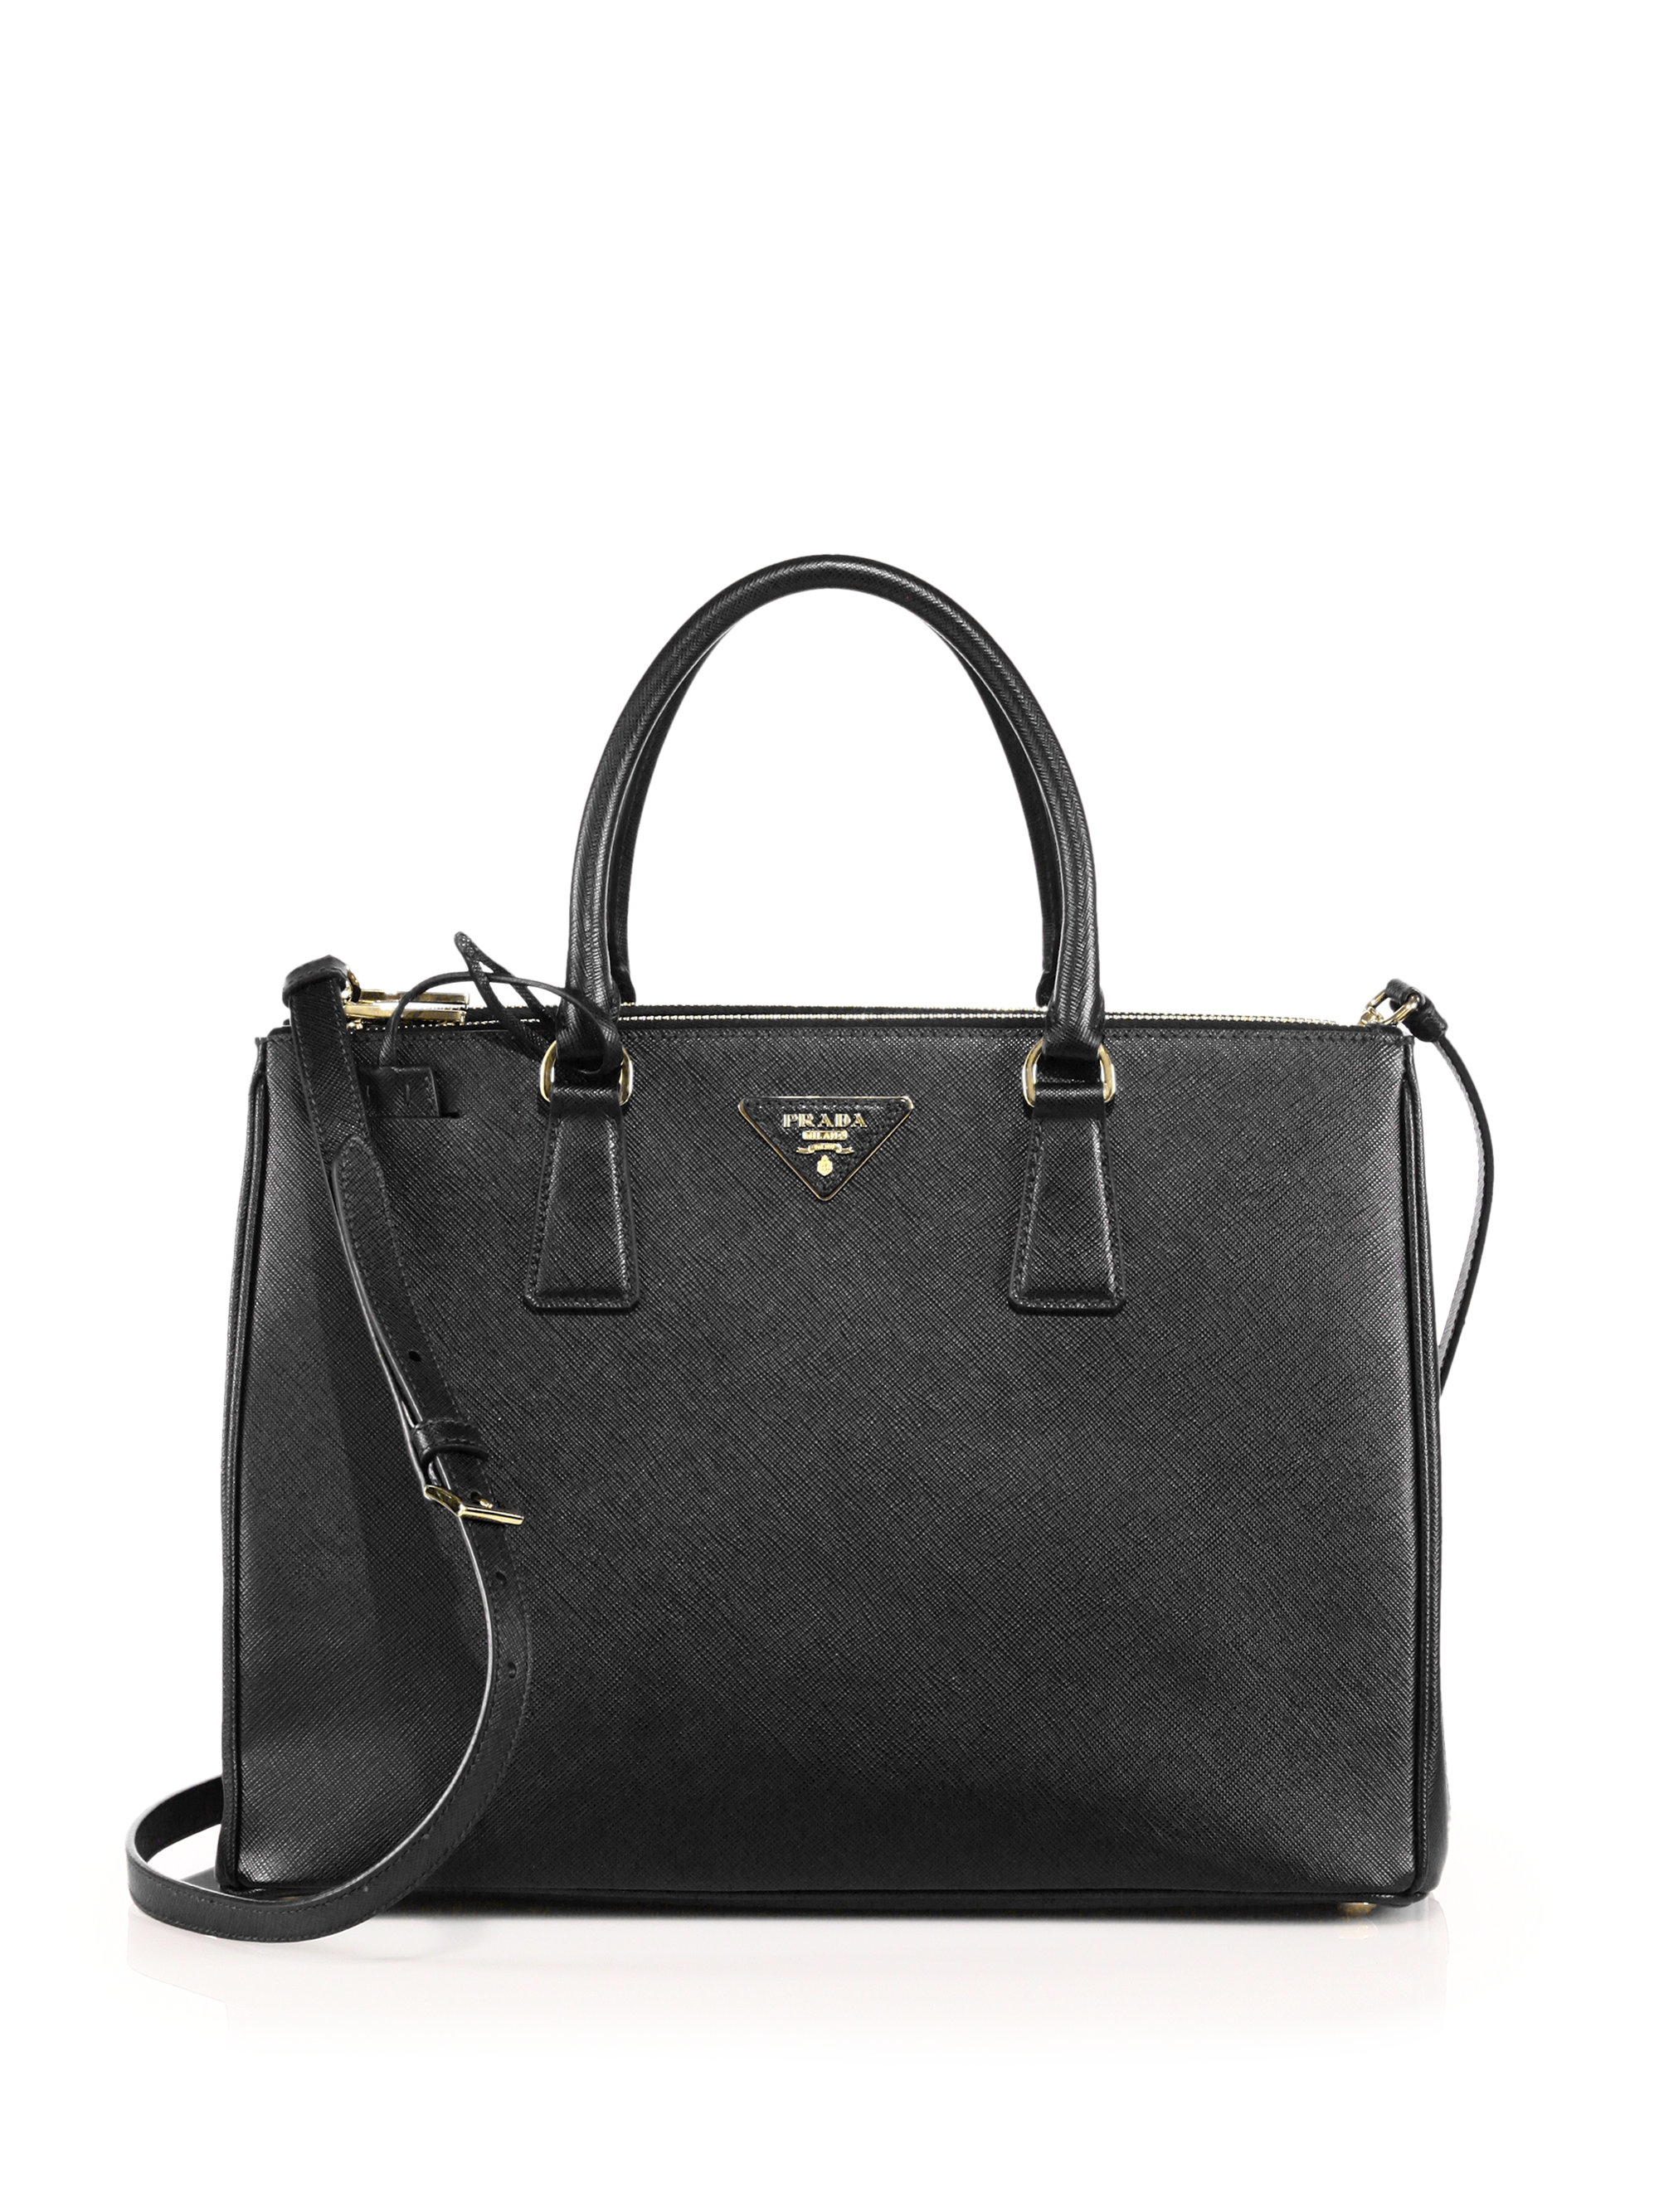 803f77ad640ea3 Prada Medium Saffiano Double Zip Bag | Stanford Center for ...